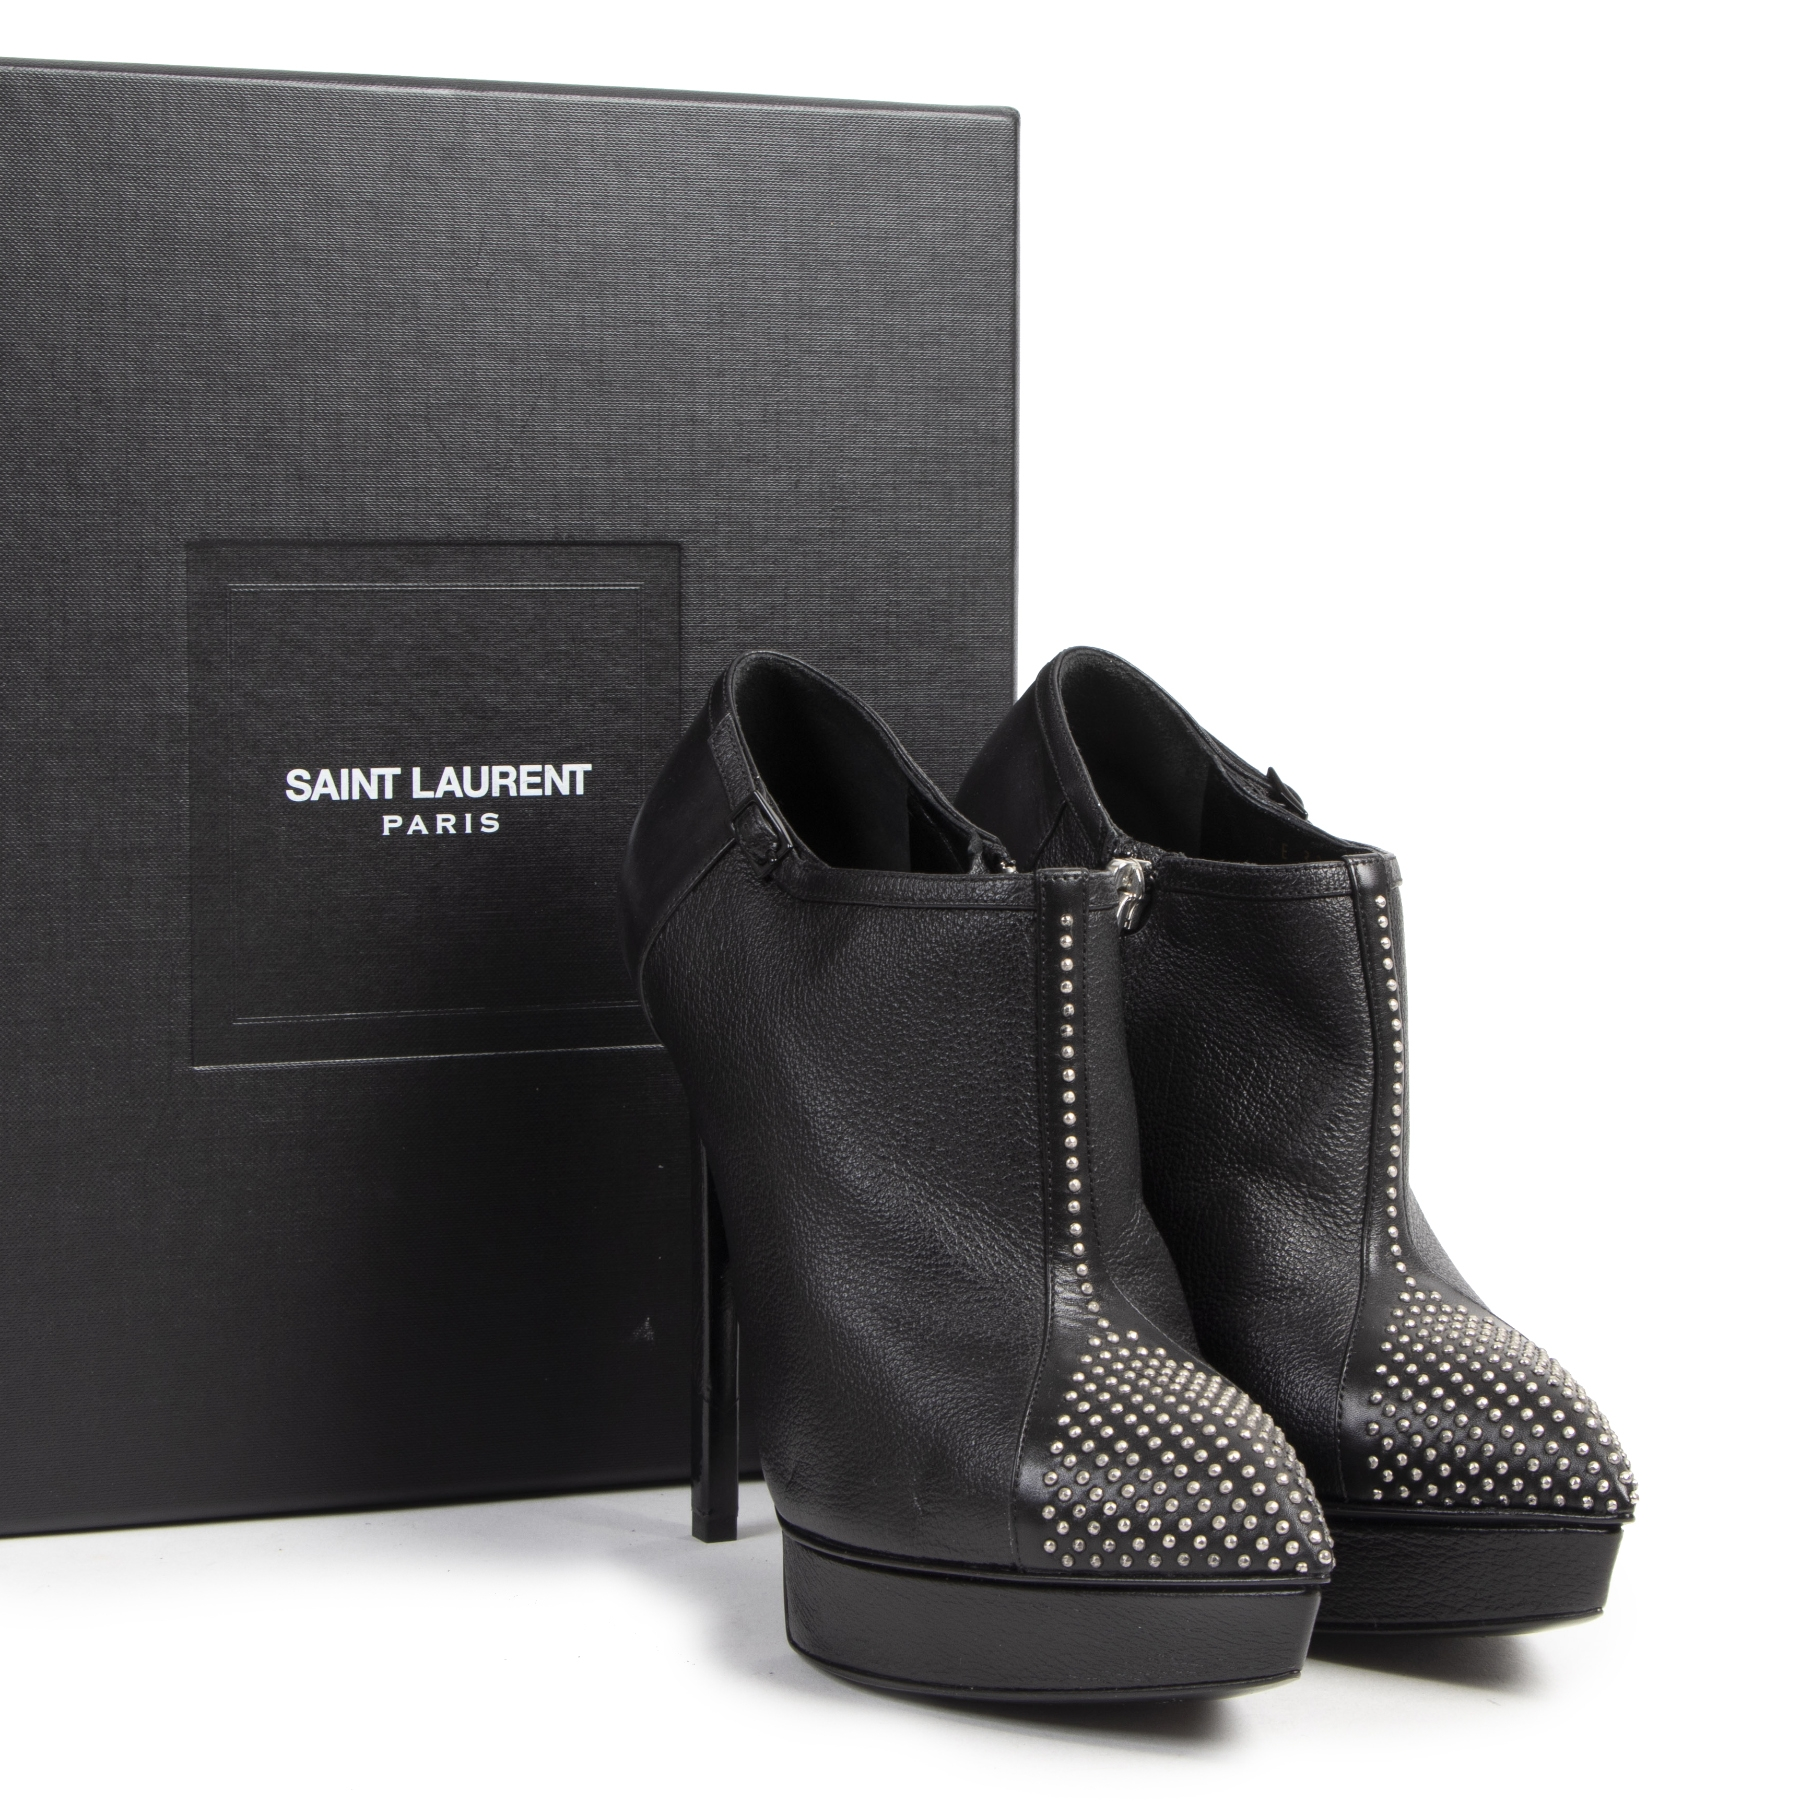 Saint Laurent Studded Ankle Boots - Size 36 - 2020 for the best price at Labellov